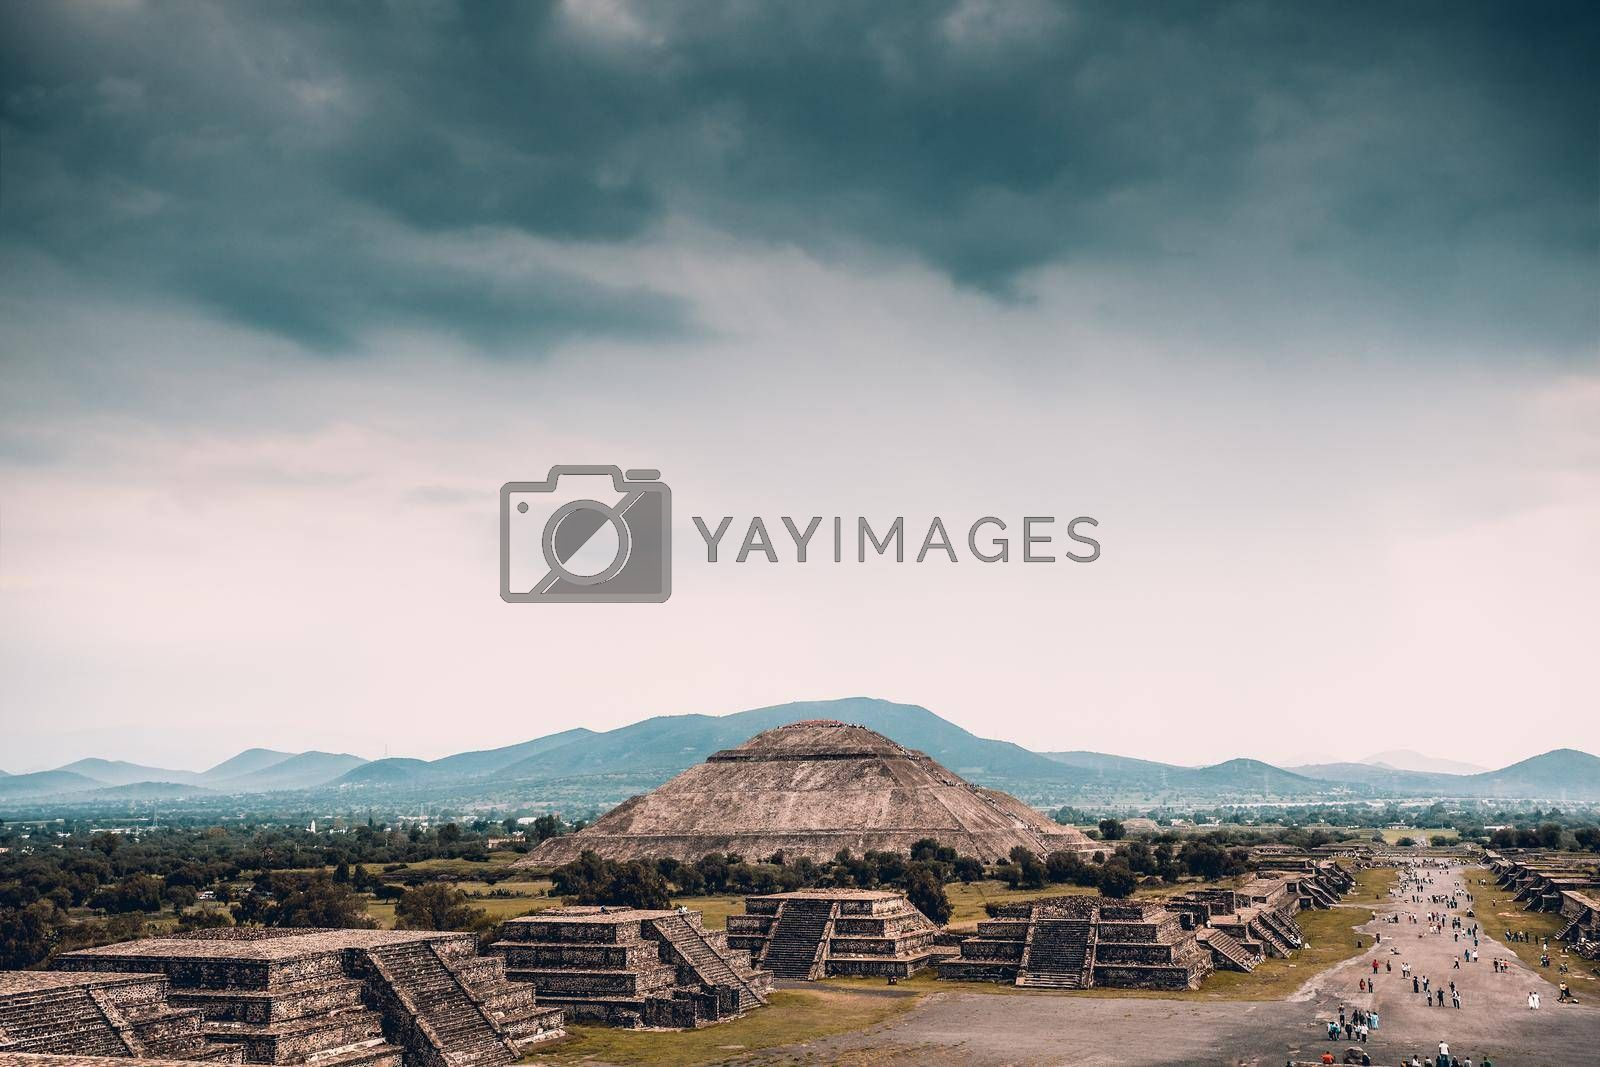 Beautiful Scene of an Ancient Ruins of Maya Pyramids. Pyramids of the Sun and the Moon. Old Aztec Civilization. Touristic Place. Teotihuacan. Mexico.